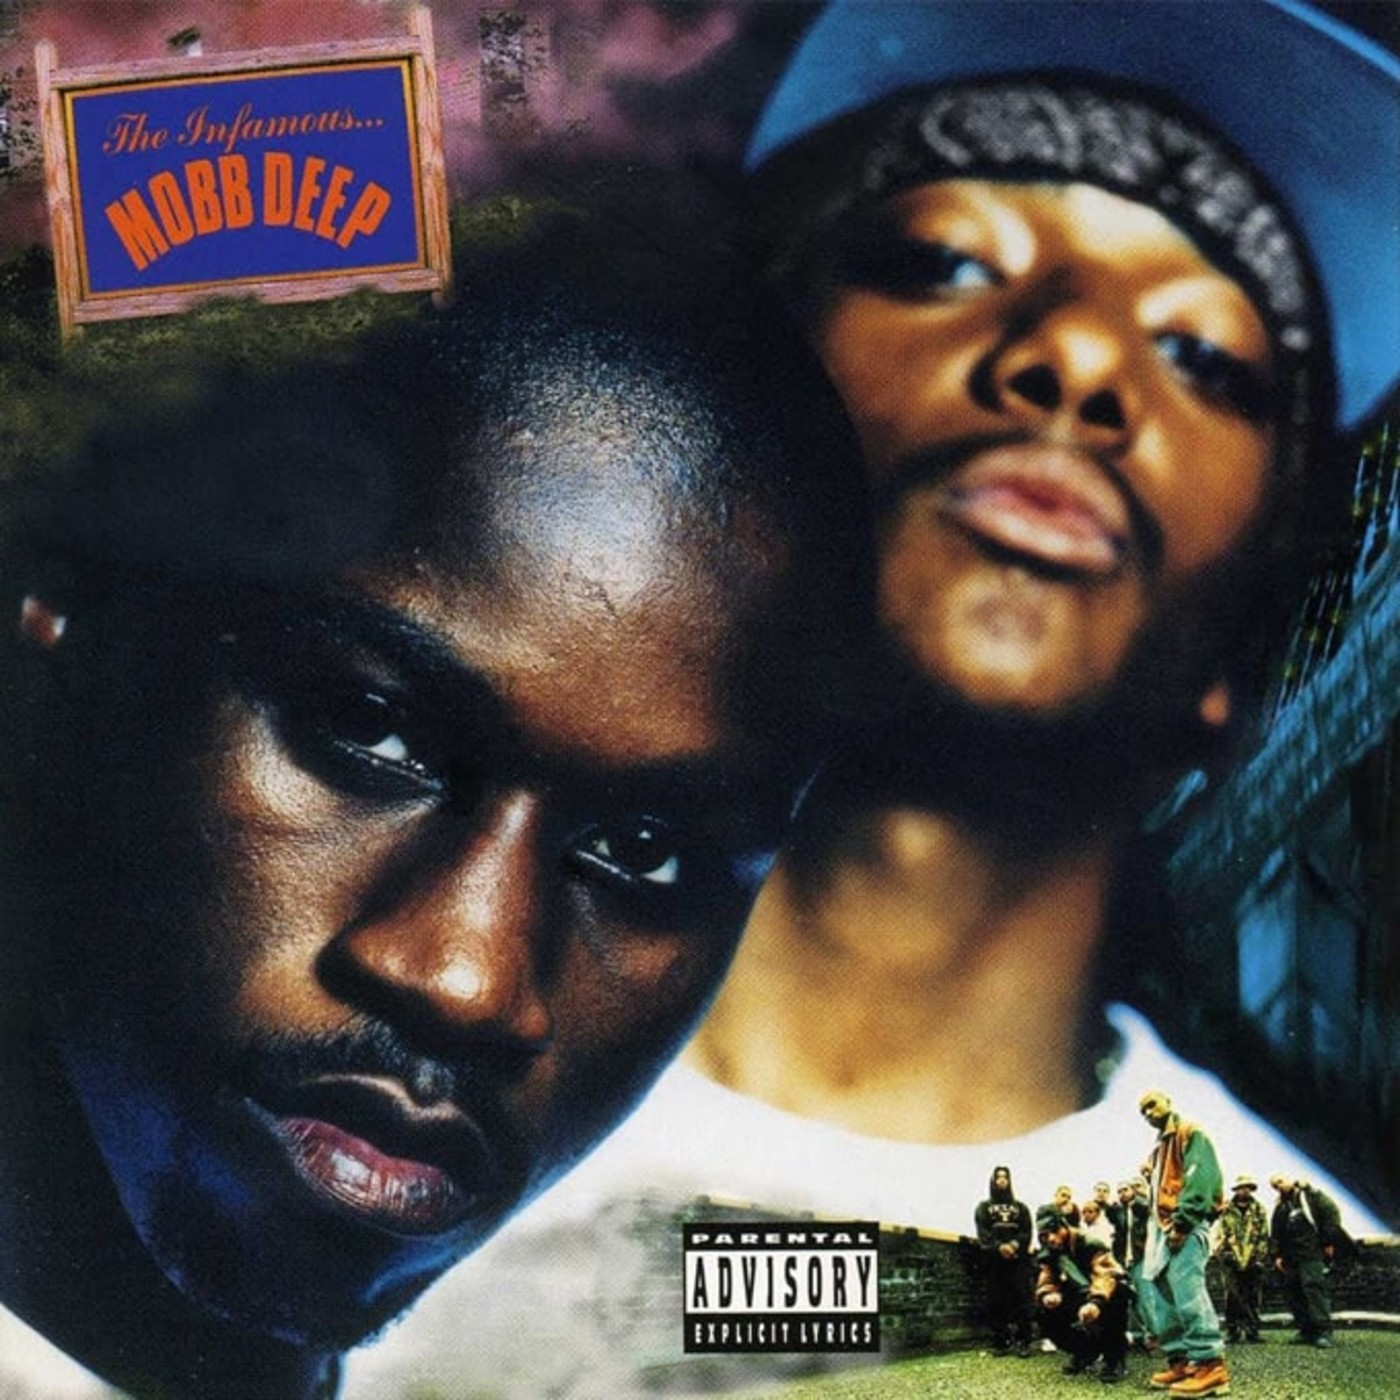 the-infamous-mobb-deep-artwork